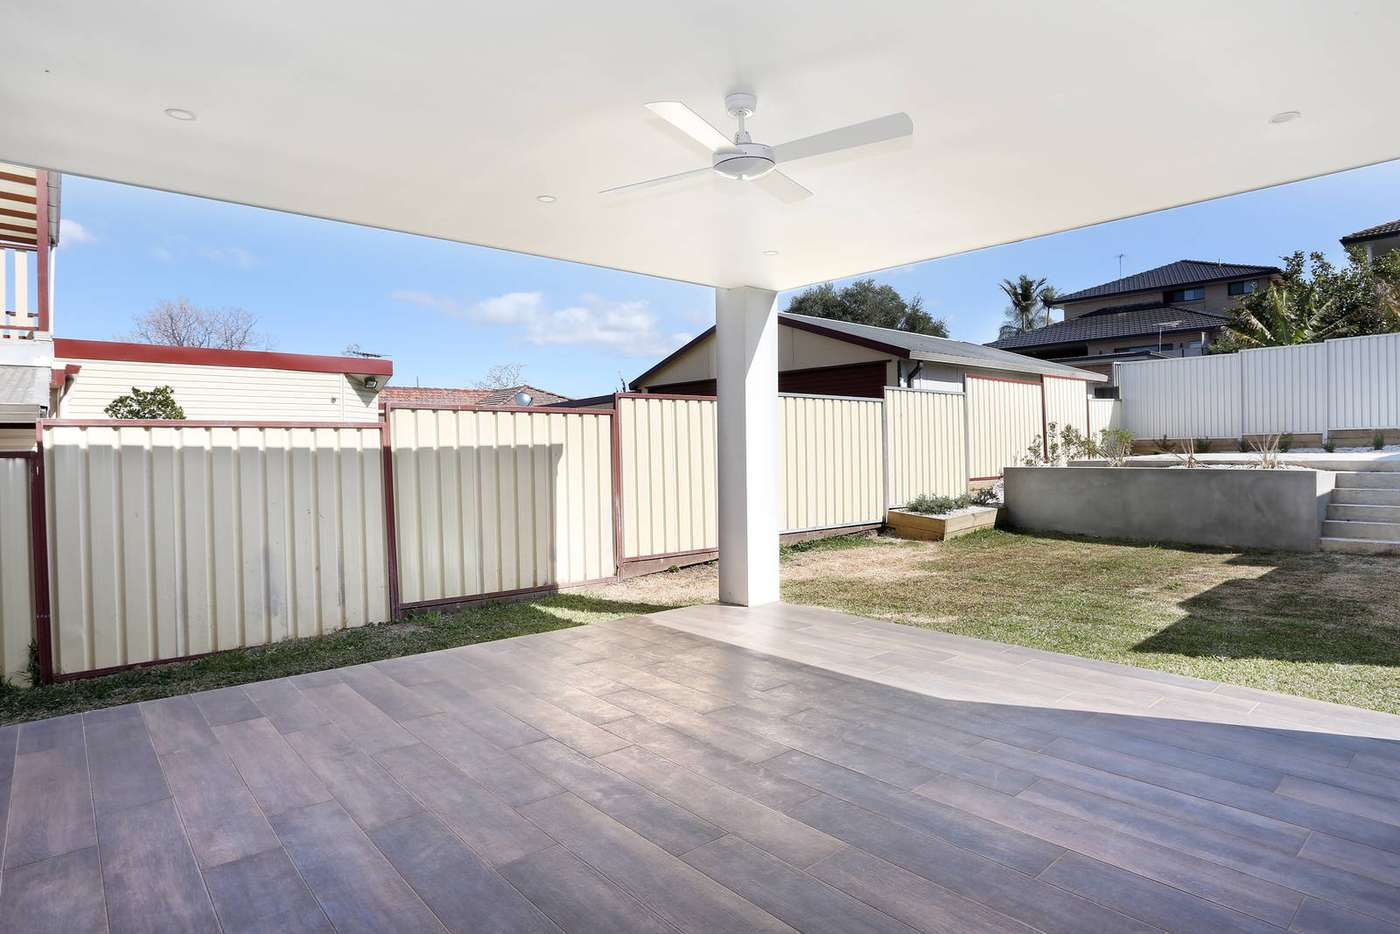 Sixth view of Homely house listing, 33 William Street, Holroyd NSW 2142